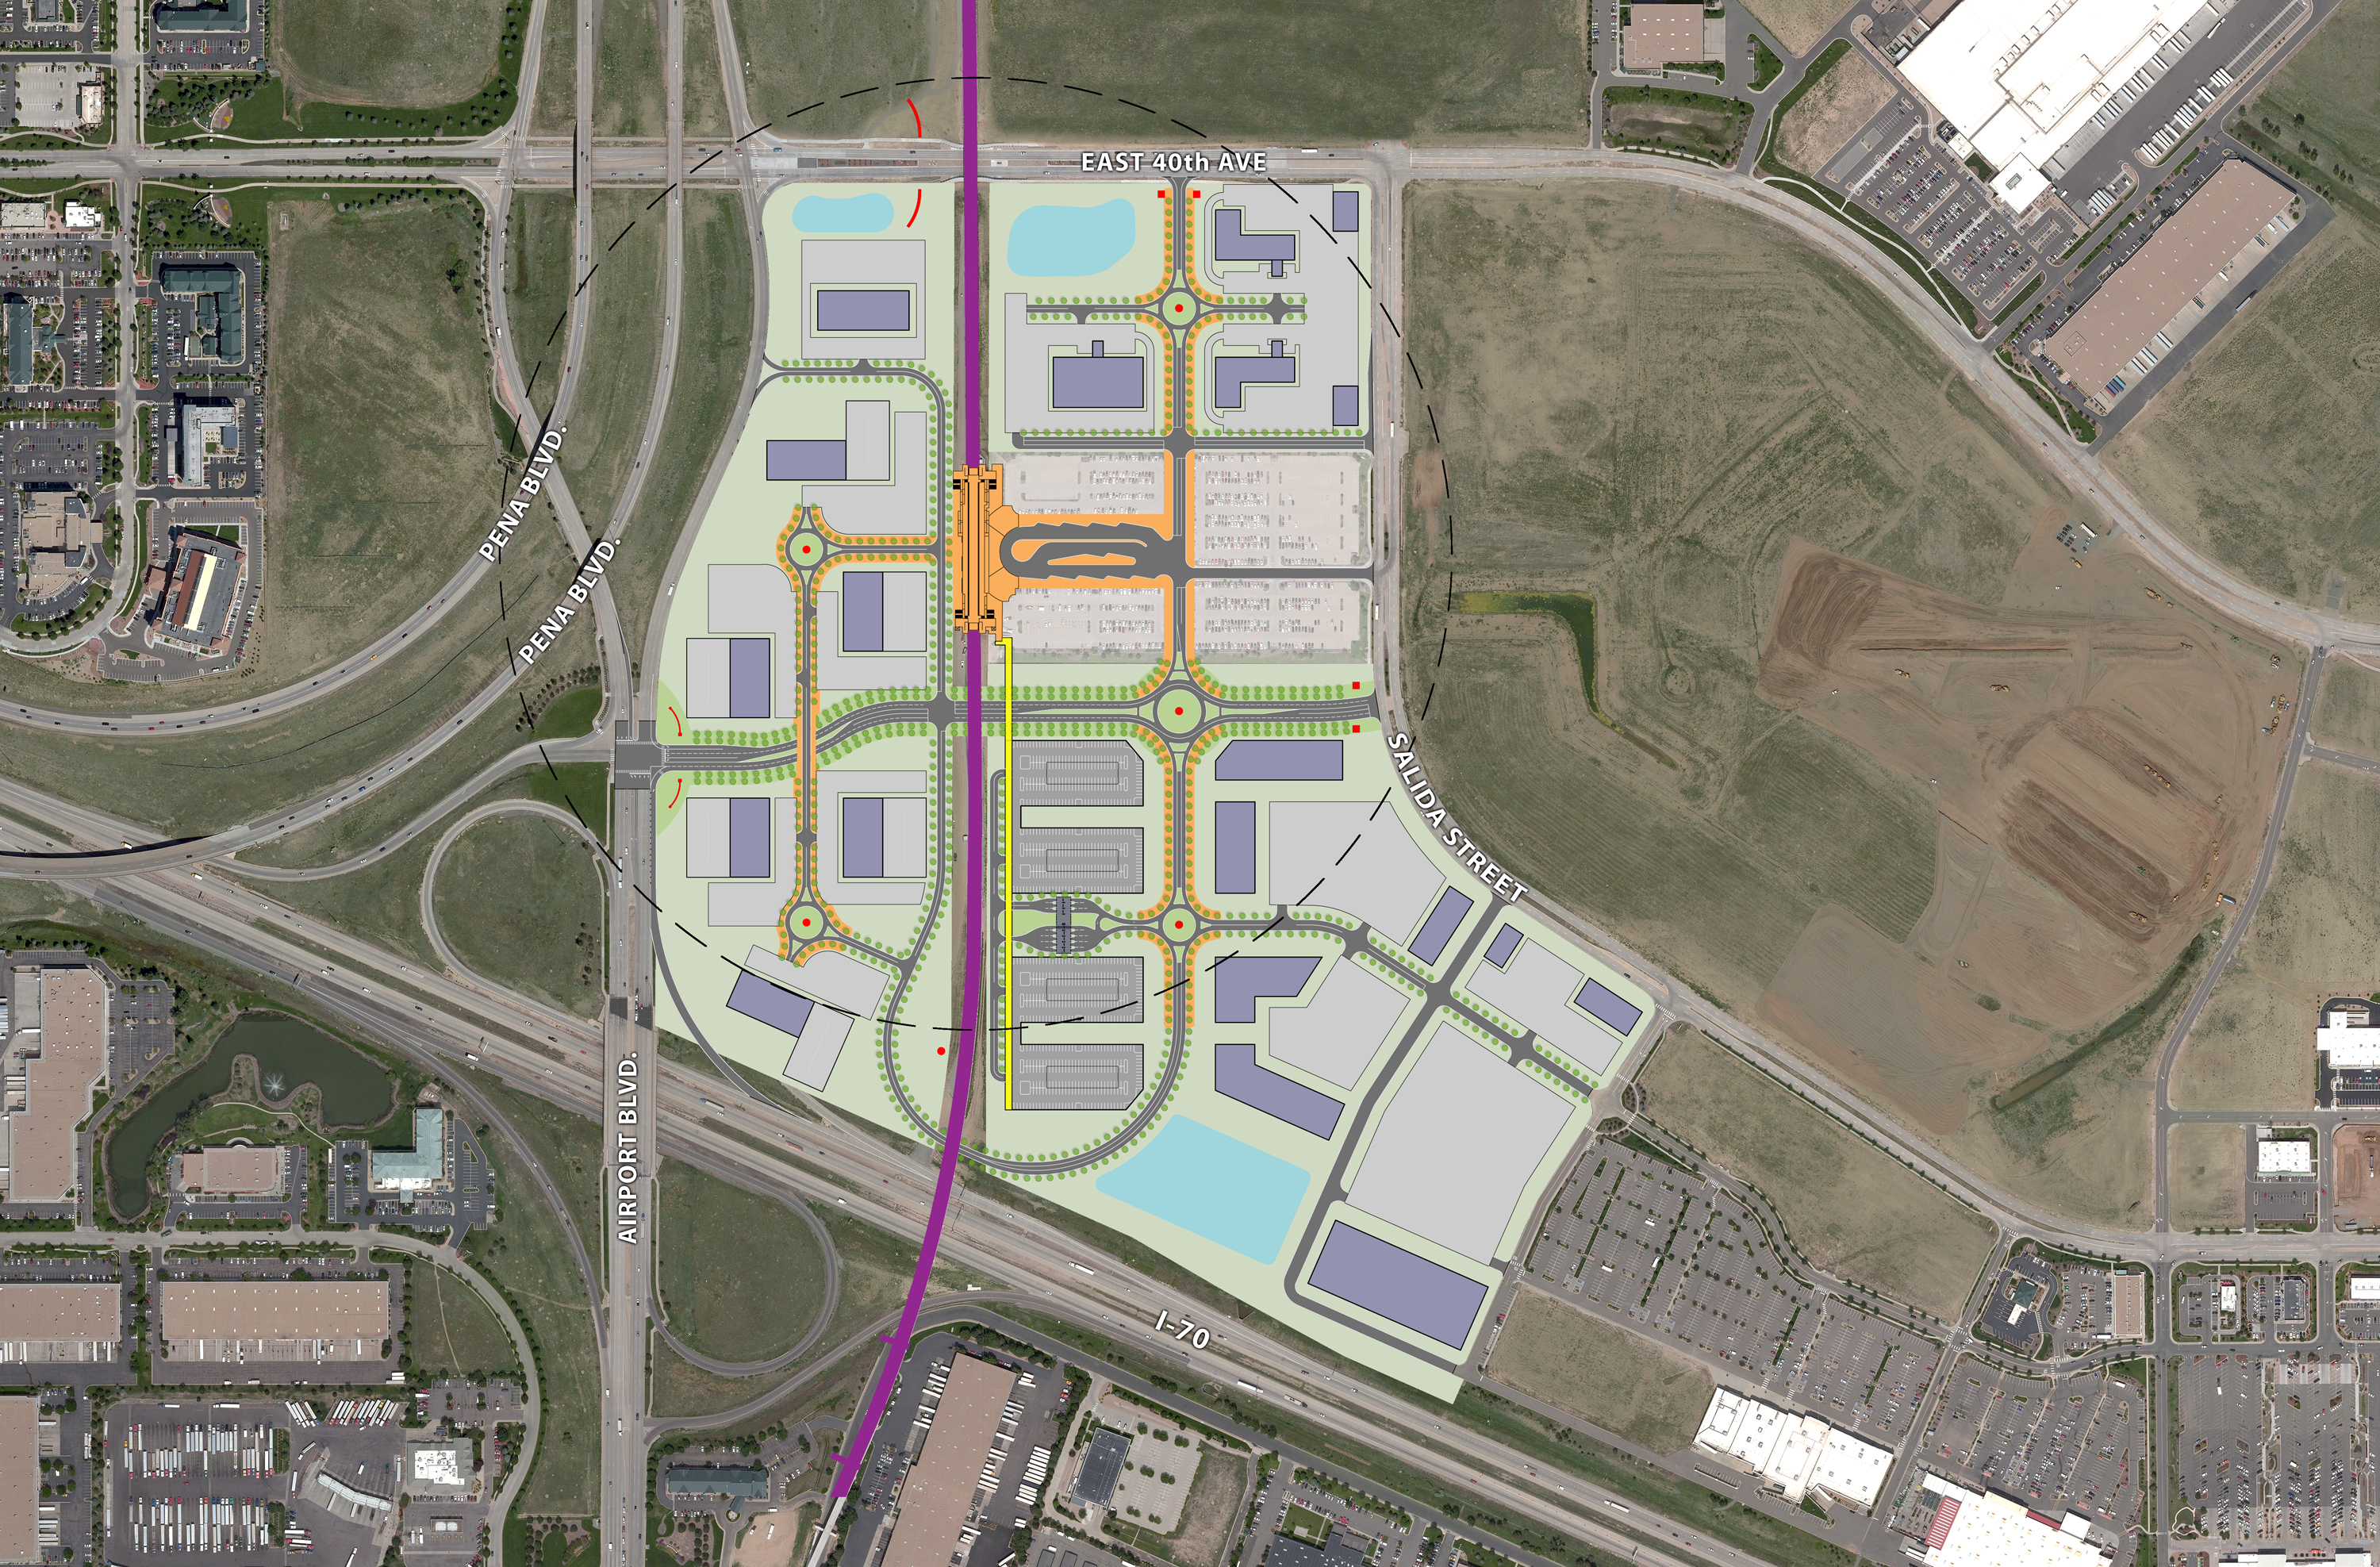 9-30-15 40th&AIRPORT master plan 1to200 sm